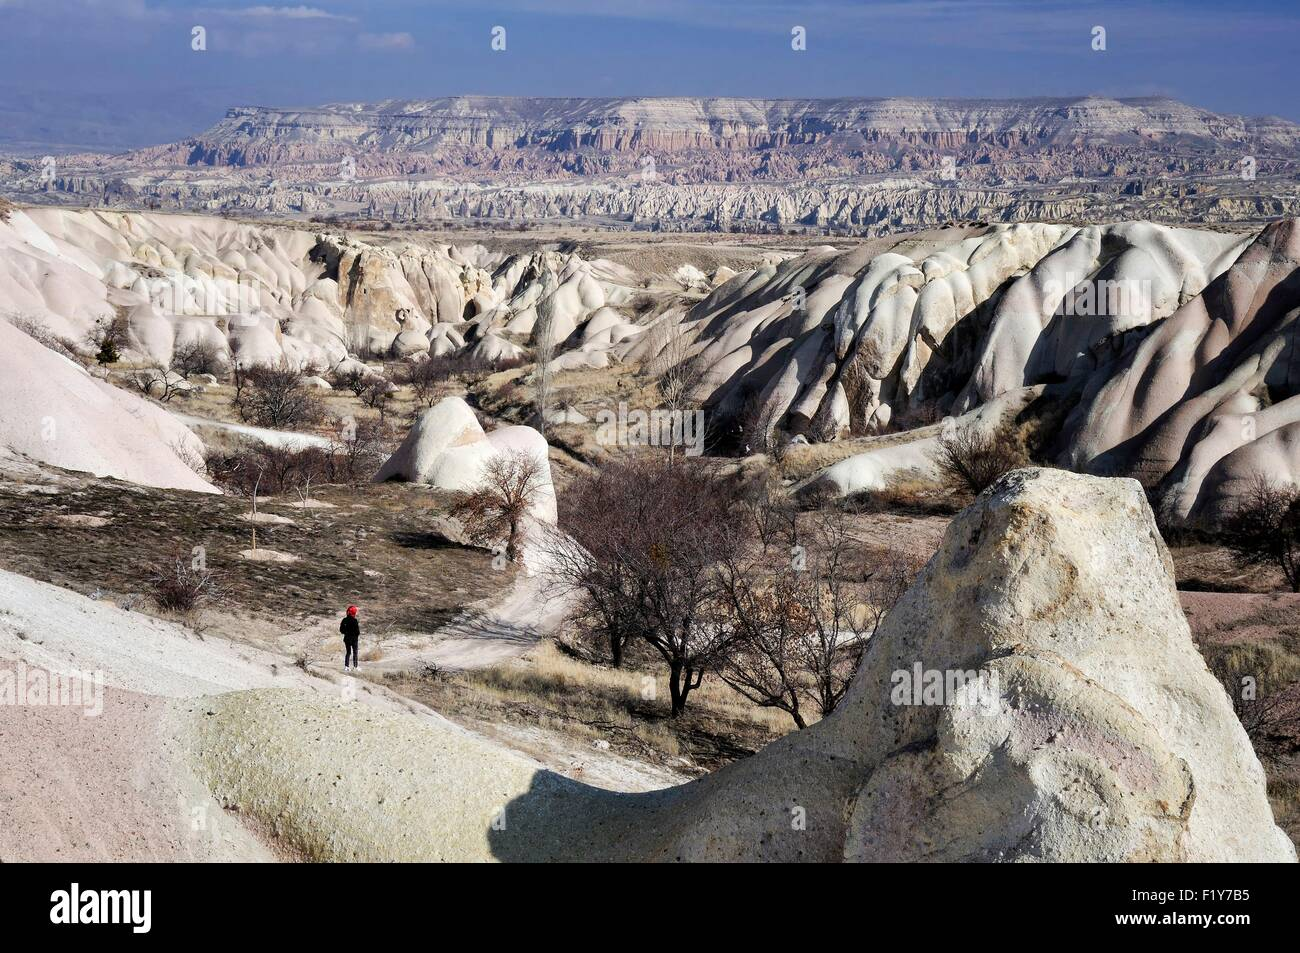 Turkey, Central Anatolia, Nevsehir Province, Cappadocia listed as World Heritage by UNESCO, Goreme national park, - Stock Image